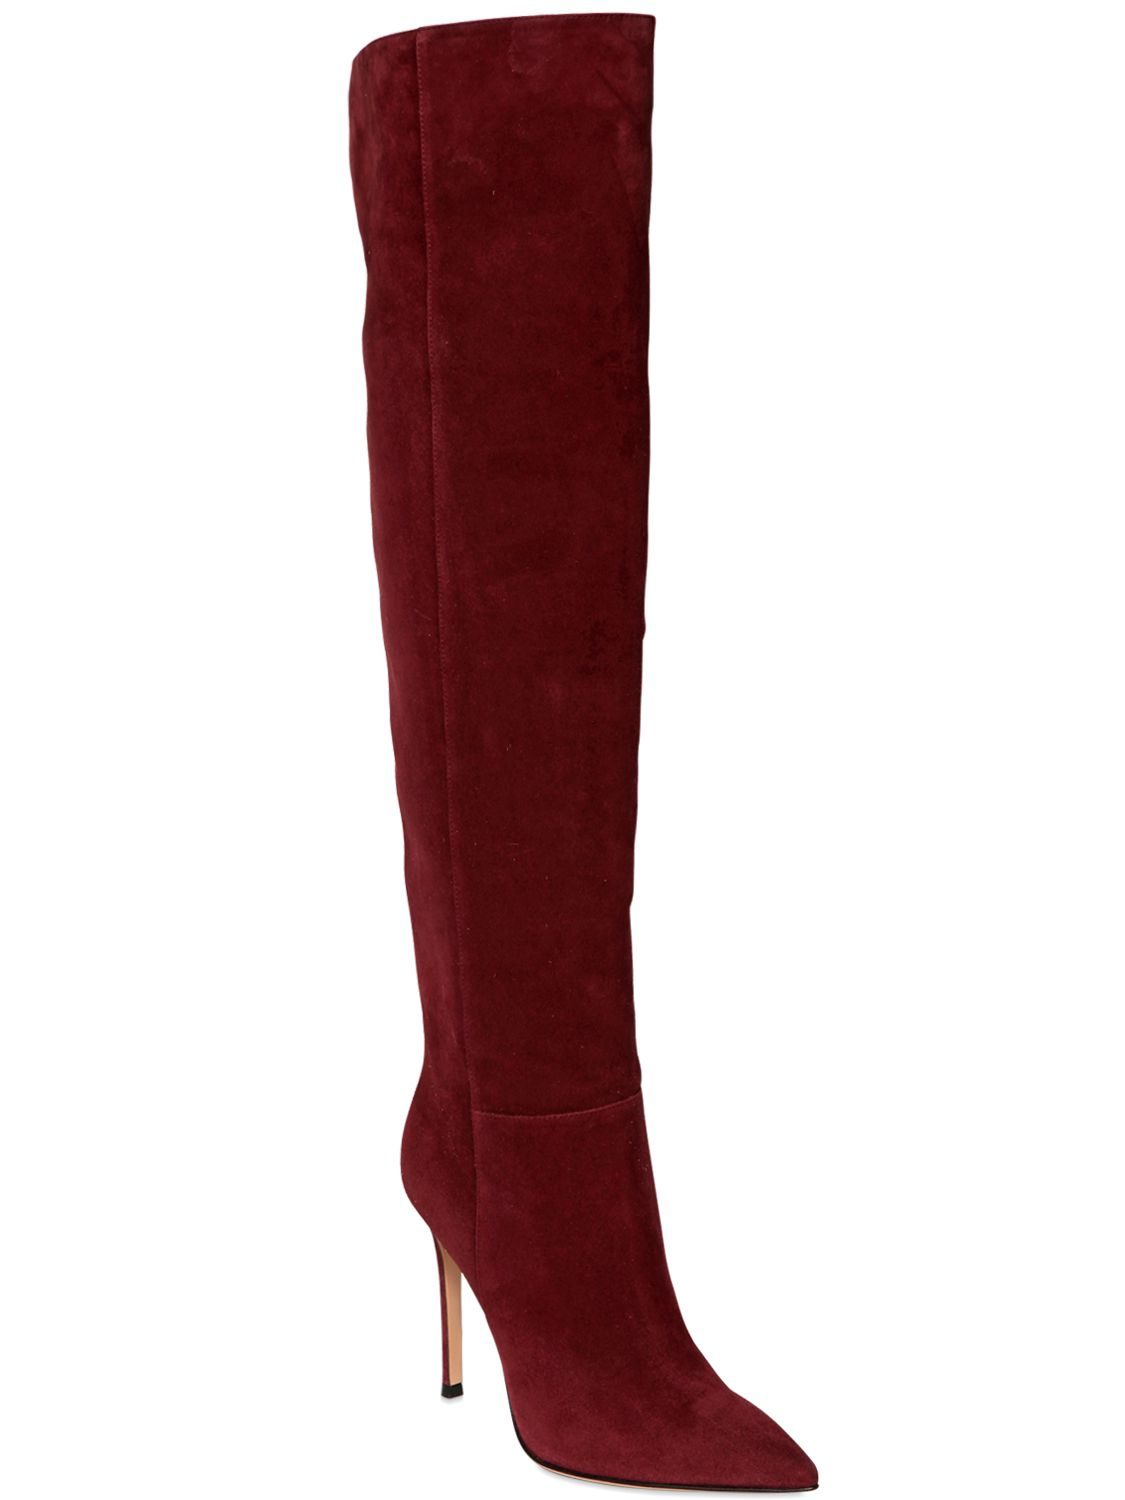 Gianvito Rossi 100mm Suede Knee High Boots in Bordeaux (Red)